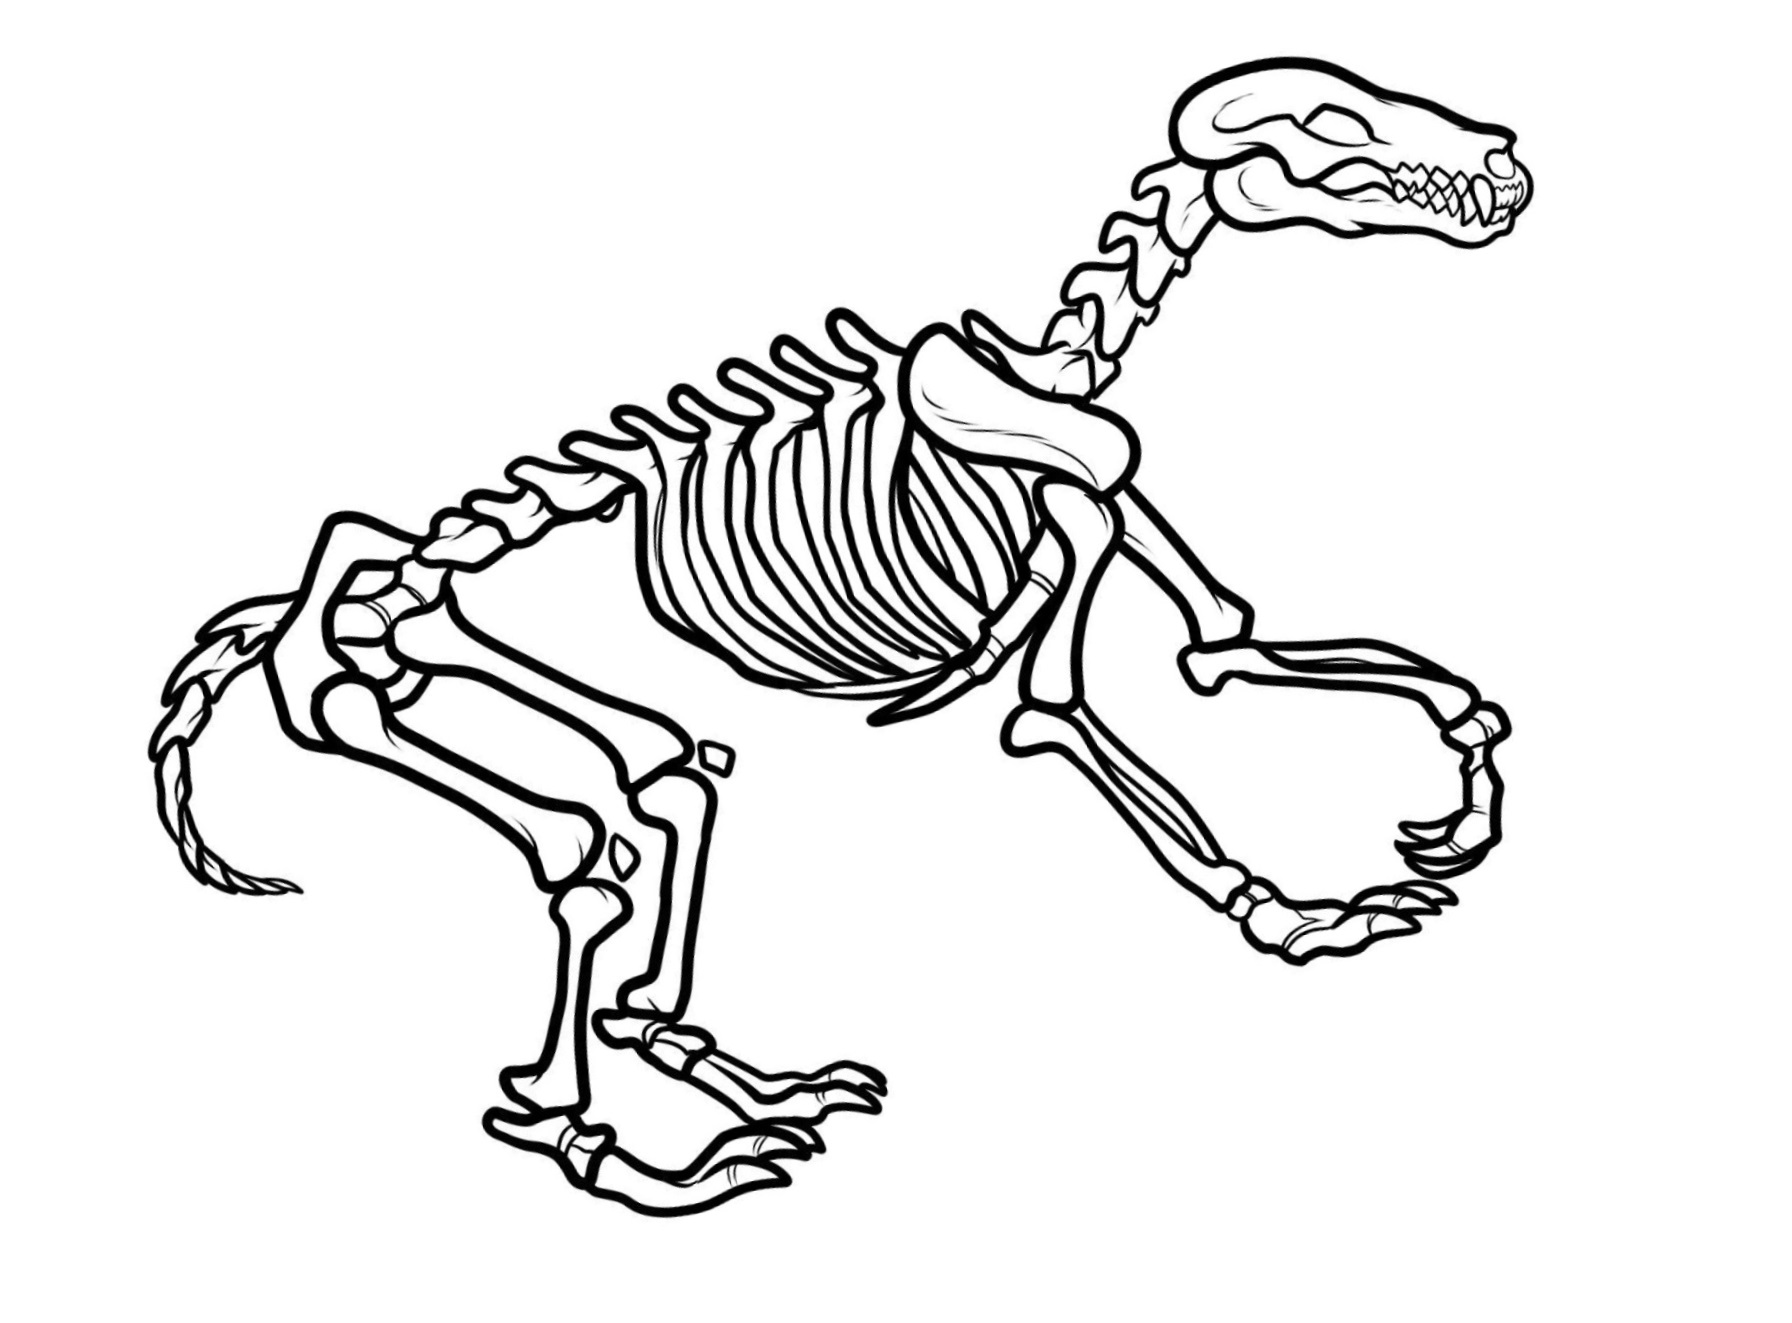 coloring skeleton pictures coloring pages skeleton free printable coloring pages skeleton pictures coloring